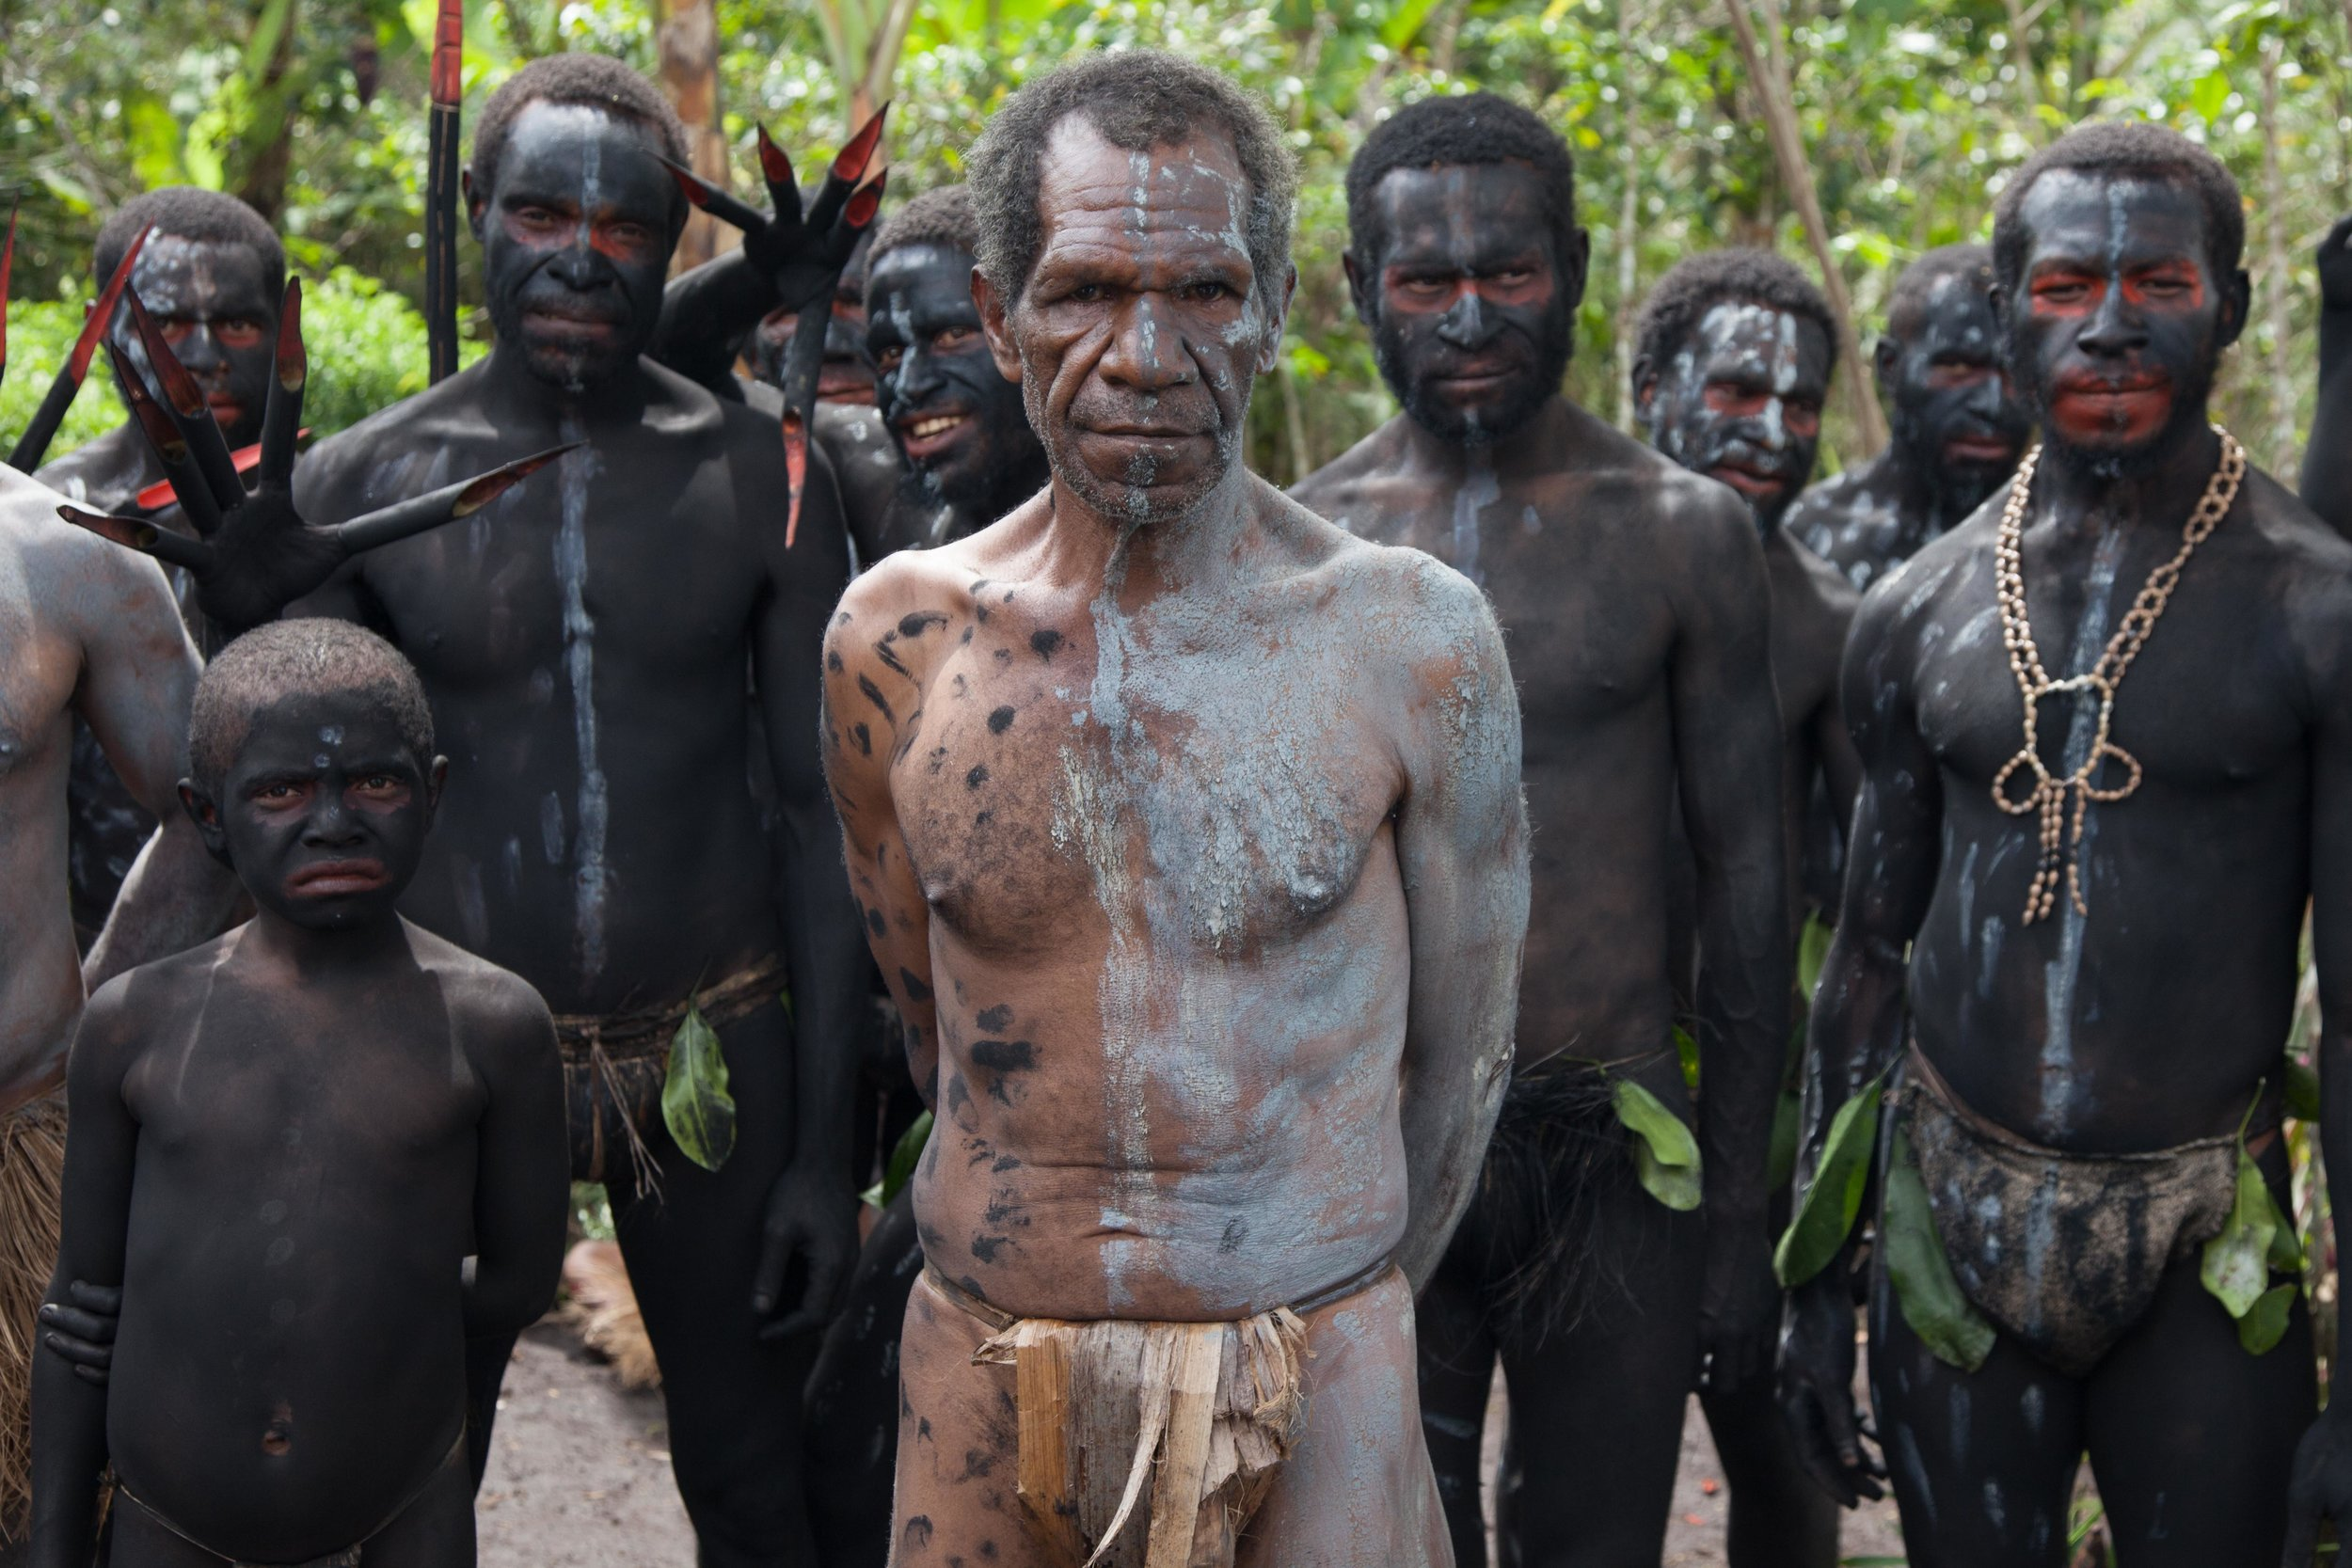 Nokondi tribesmen dressed to perform their Spirit Dance. Eastern Highland province